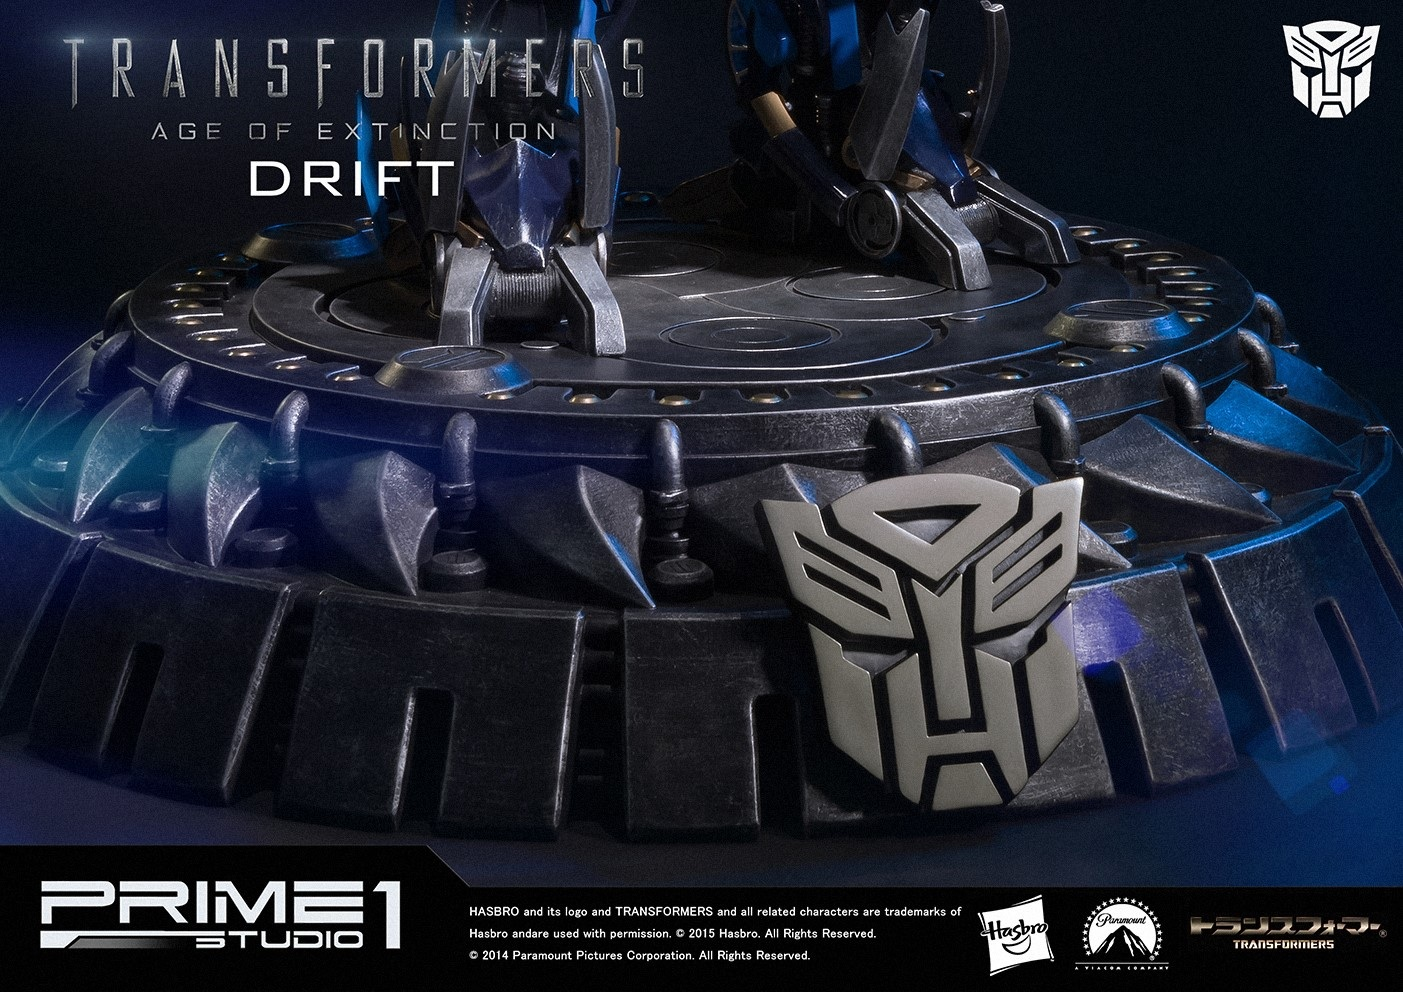 Statues des Films Transformers (articulé, non transformable) ― Par Prime1Studio, M3 Studio, Concept Zone, Super Fans Group, Soap Studio, Soldier Story Toys, etc - Page 3 873822image1423754770